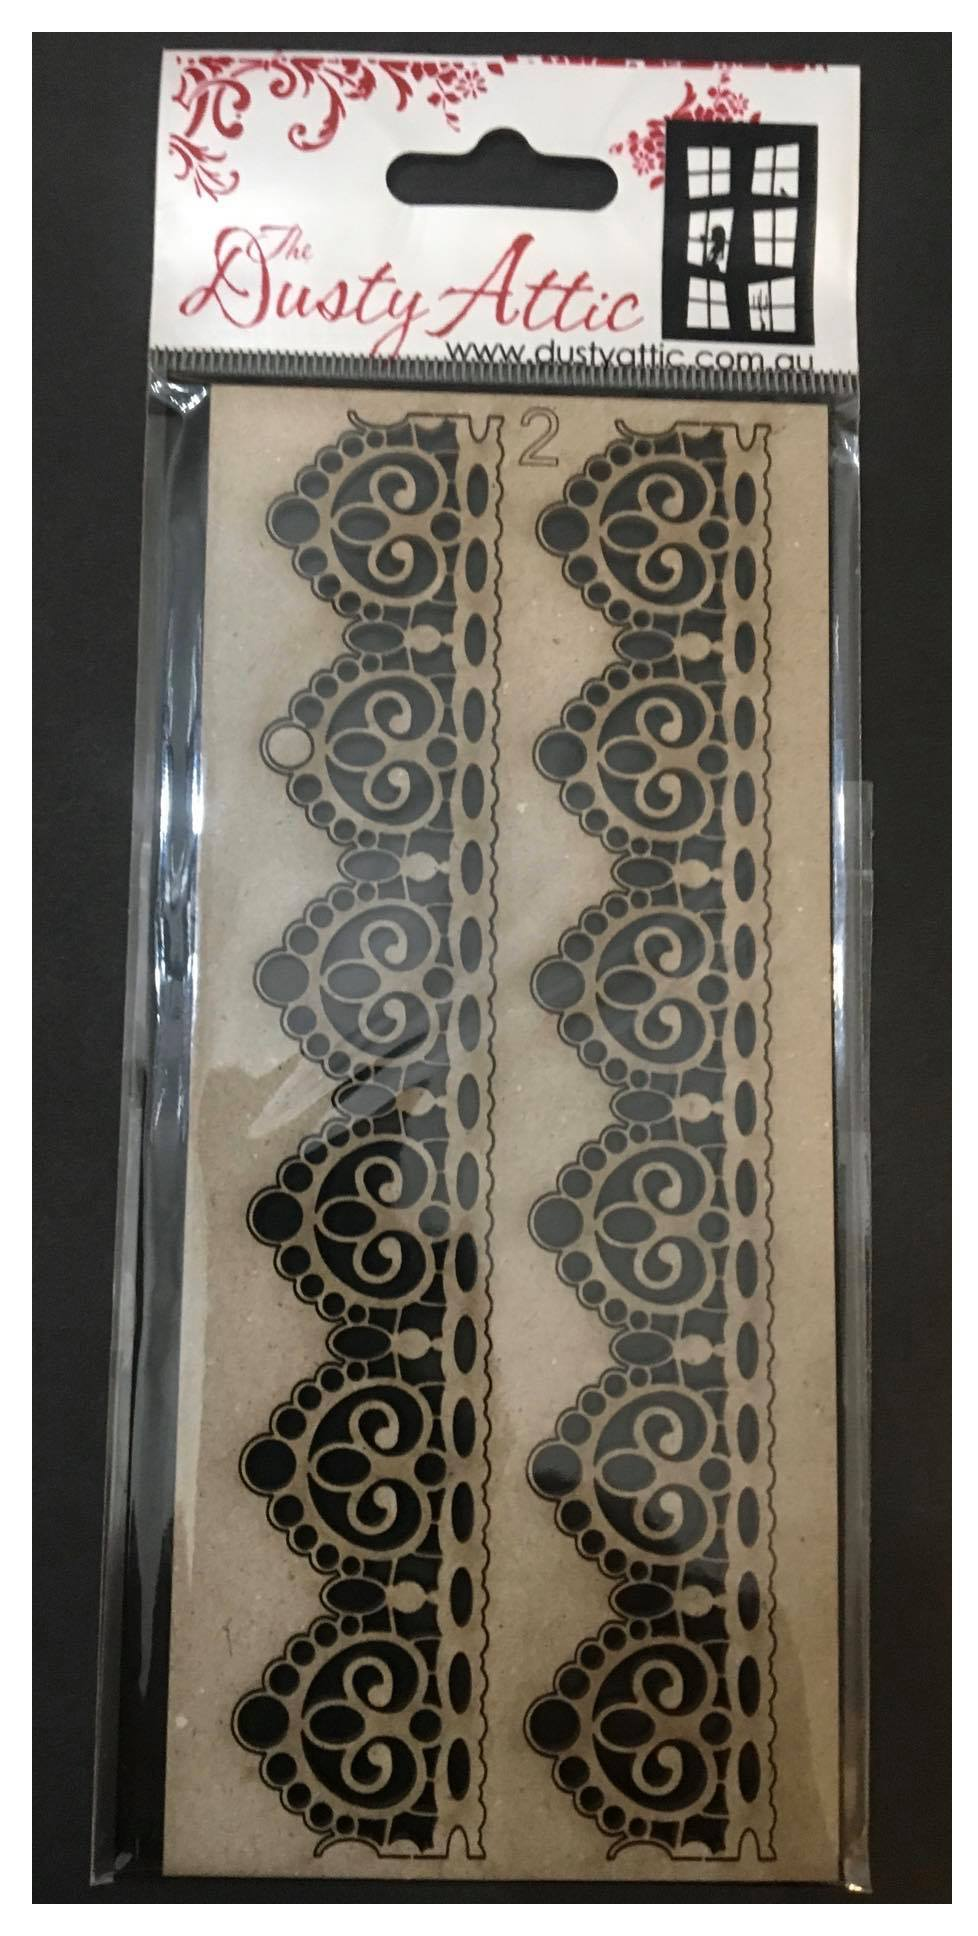 Dusty Attic Chipboard - Lace Border #2 Small